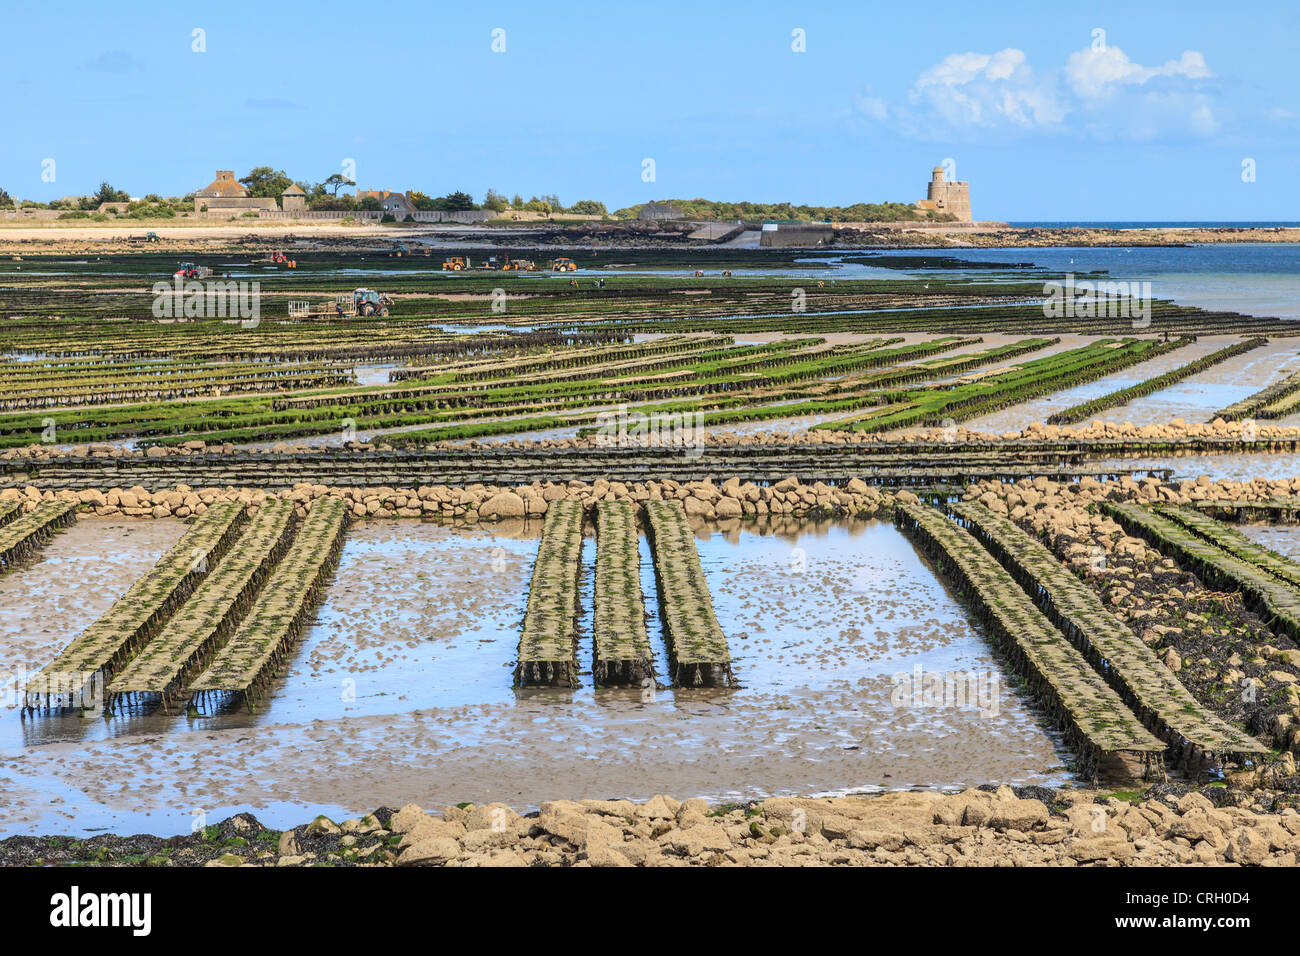 The oyster beds for which the fishing port of St-Vaast-La-Hougue, Normandy, France, is famous - Stock Image